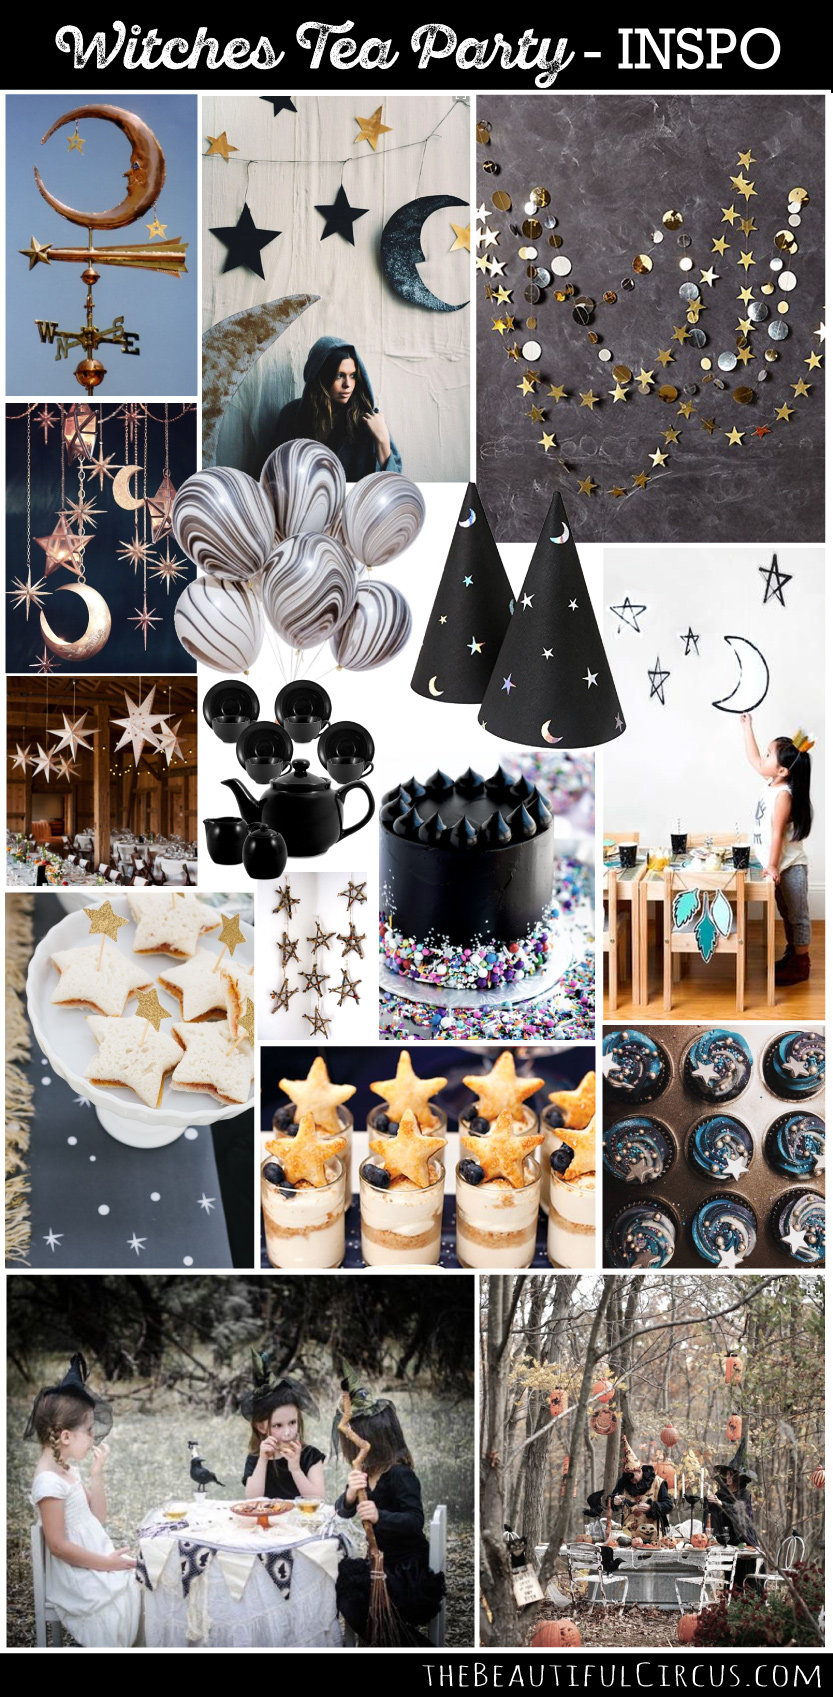 witches-tea-party_modern_inspo_736